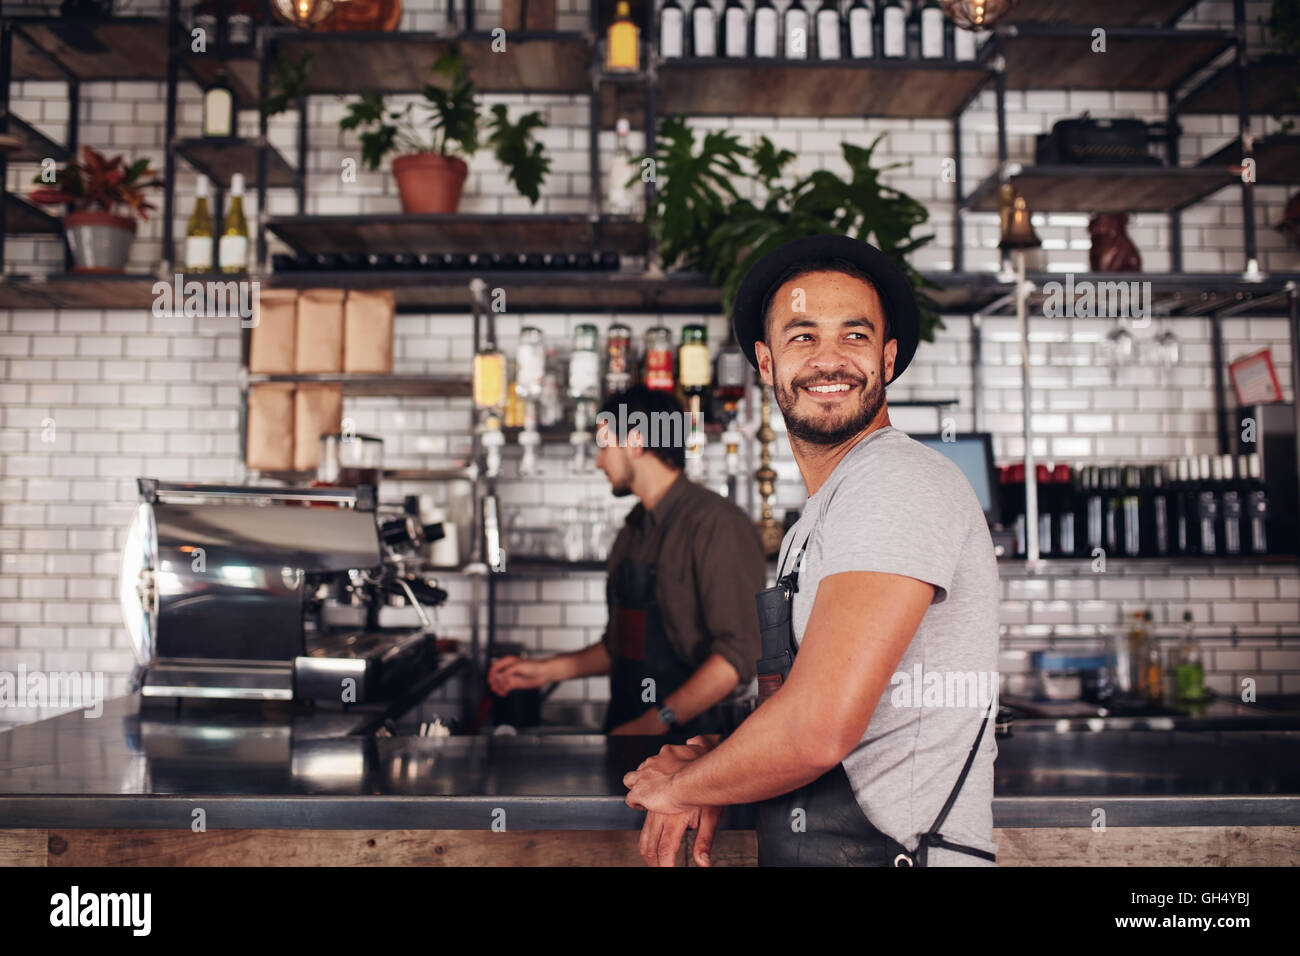 Coffee shop owner standing with barista working behind the counter making drinks. - Stock Image